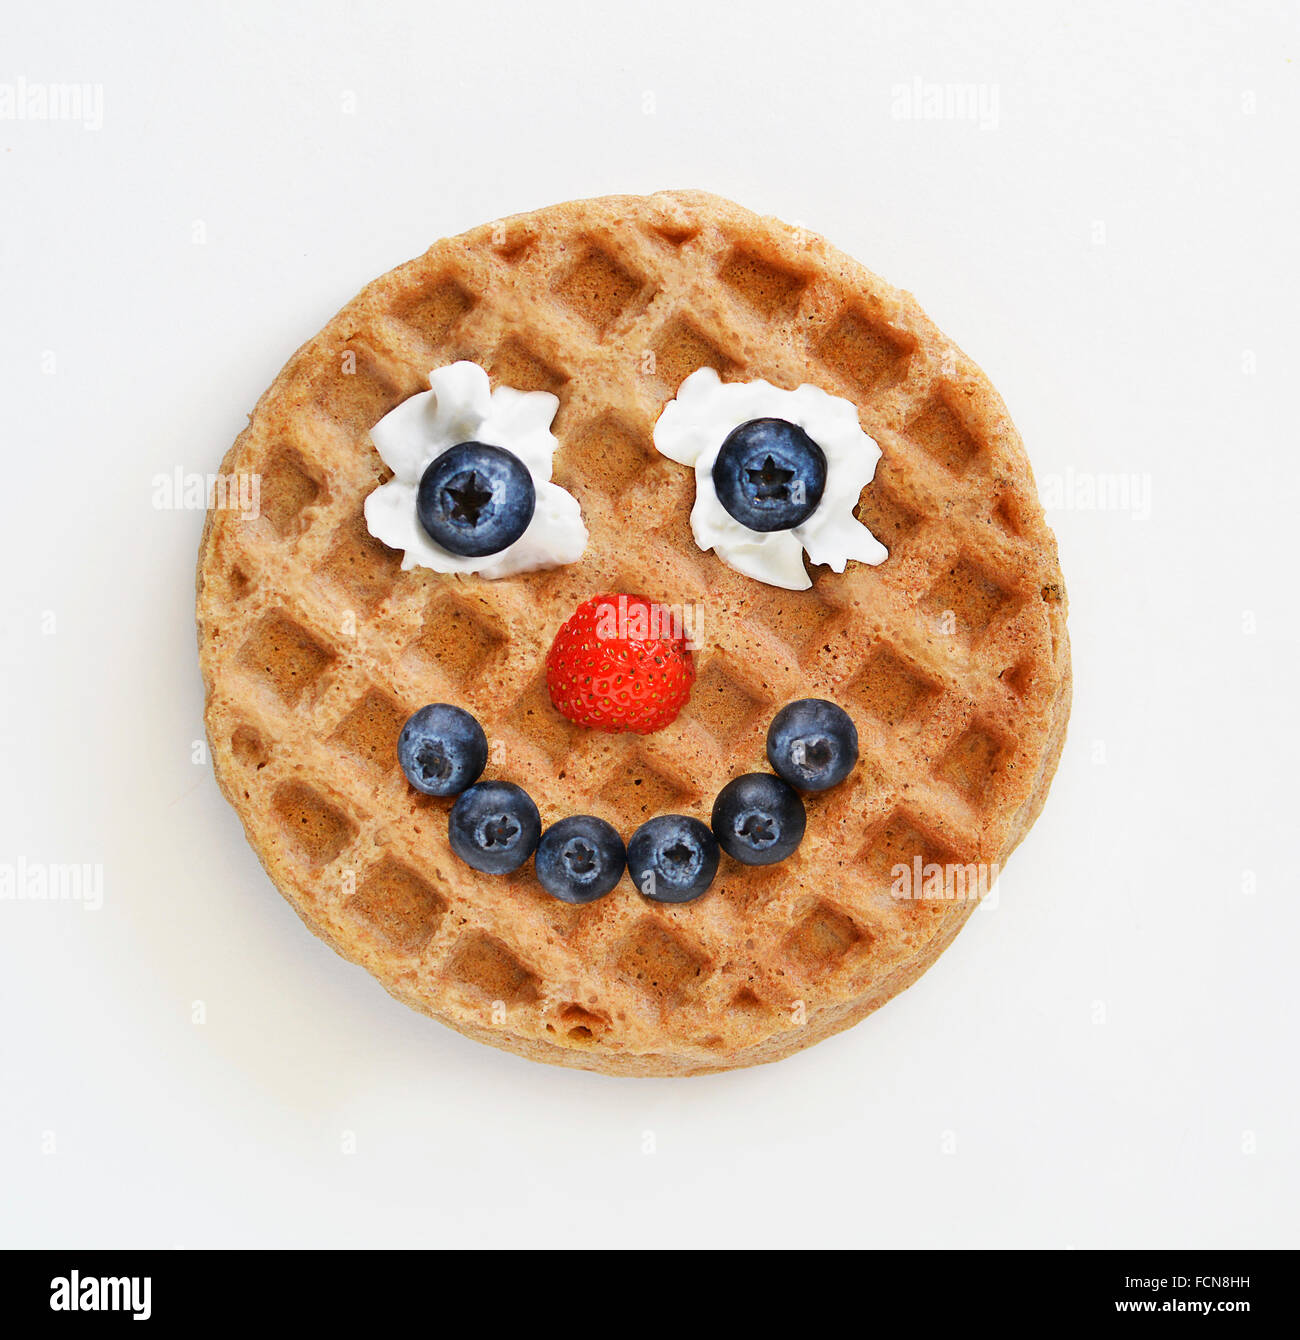 Waffle with a happy face made from fresh fruit - Stock Image